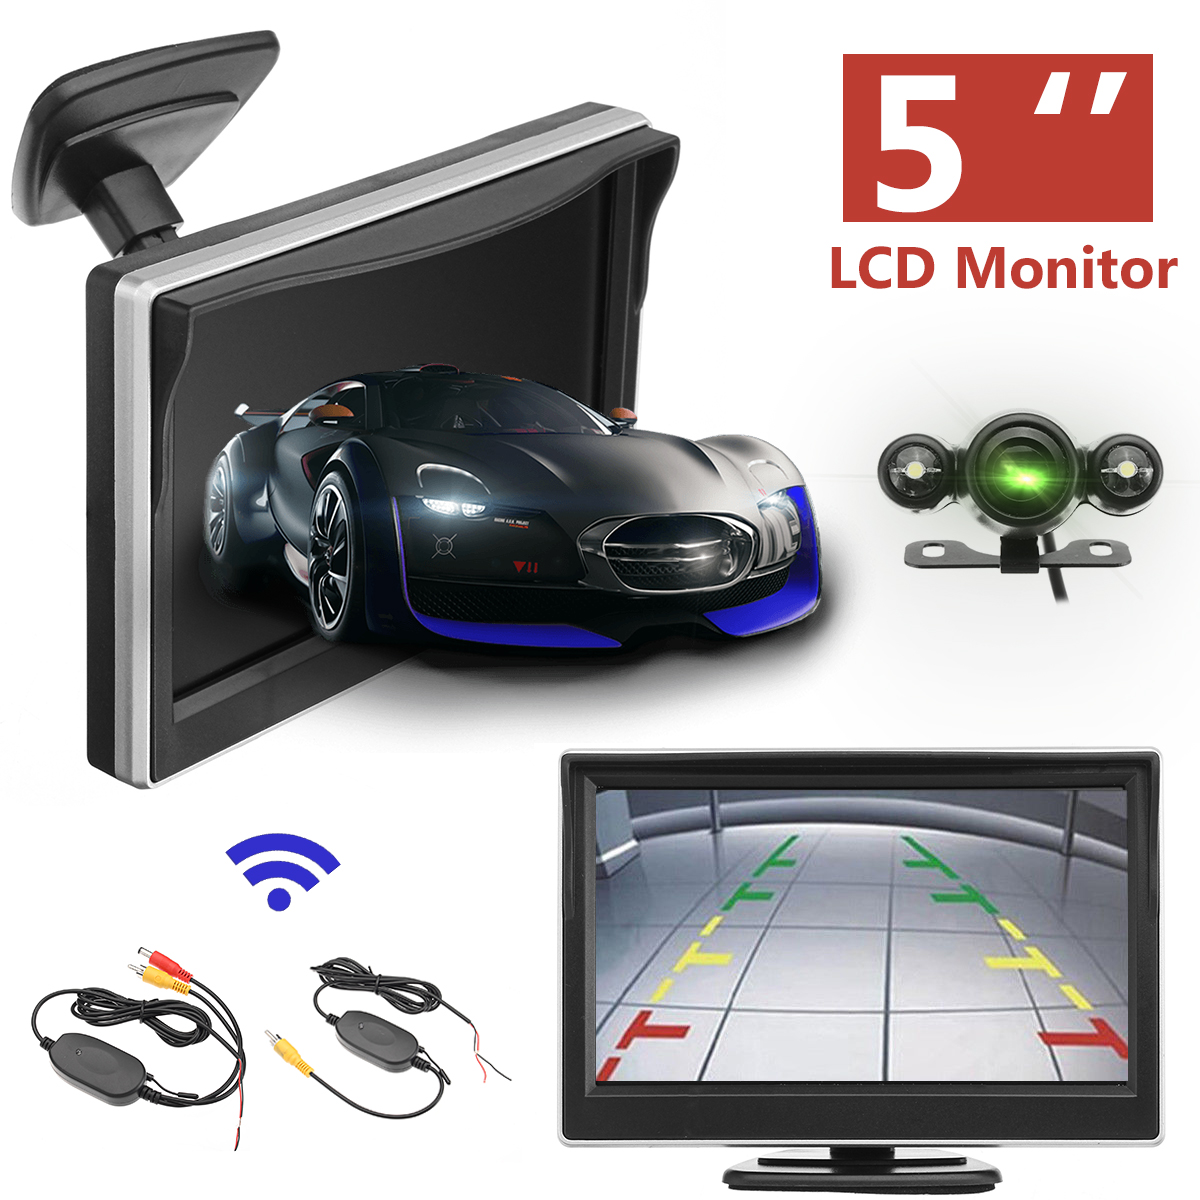 5 inch 720P Wireless Car Parking Reversing Camera LCD Monitor IR Night Vision Truck Rear View Tailer Backup Camera Waterproof ir led car rear view ip network camera 720p backup reversing parking rearview cam night vision waterproof for truck bus page 1